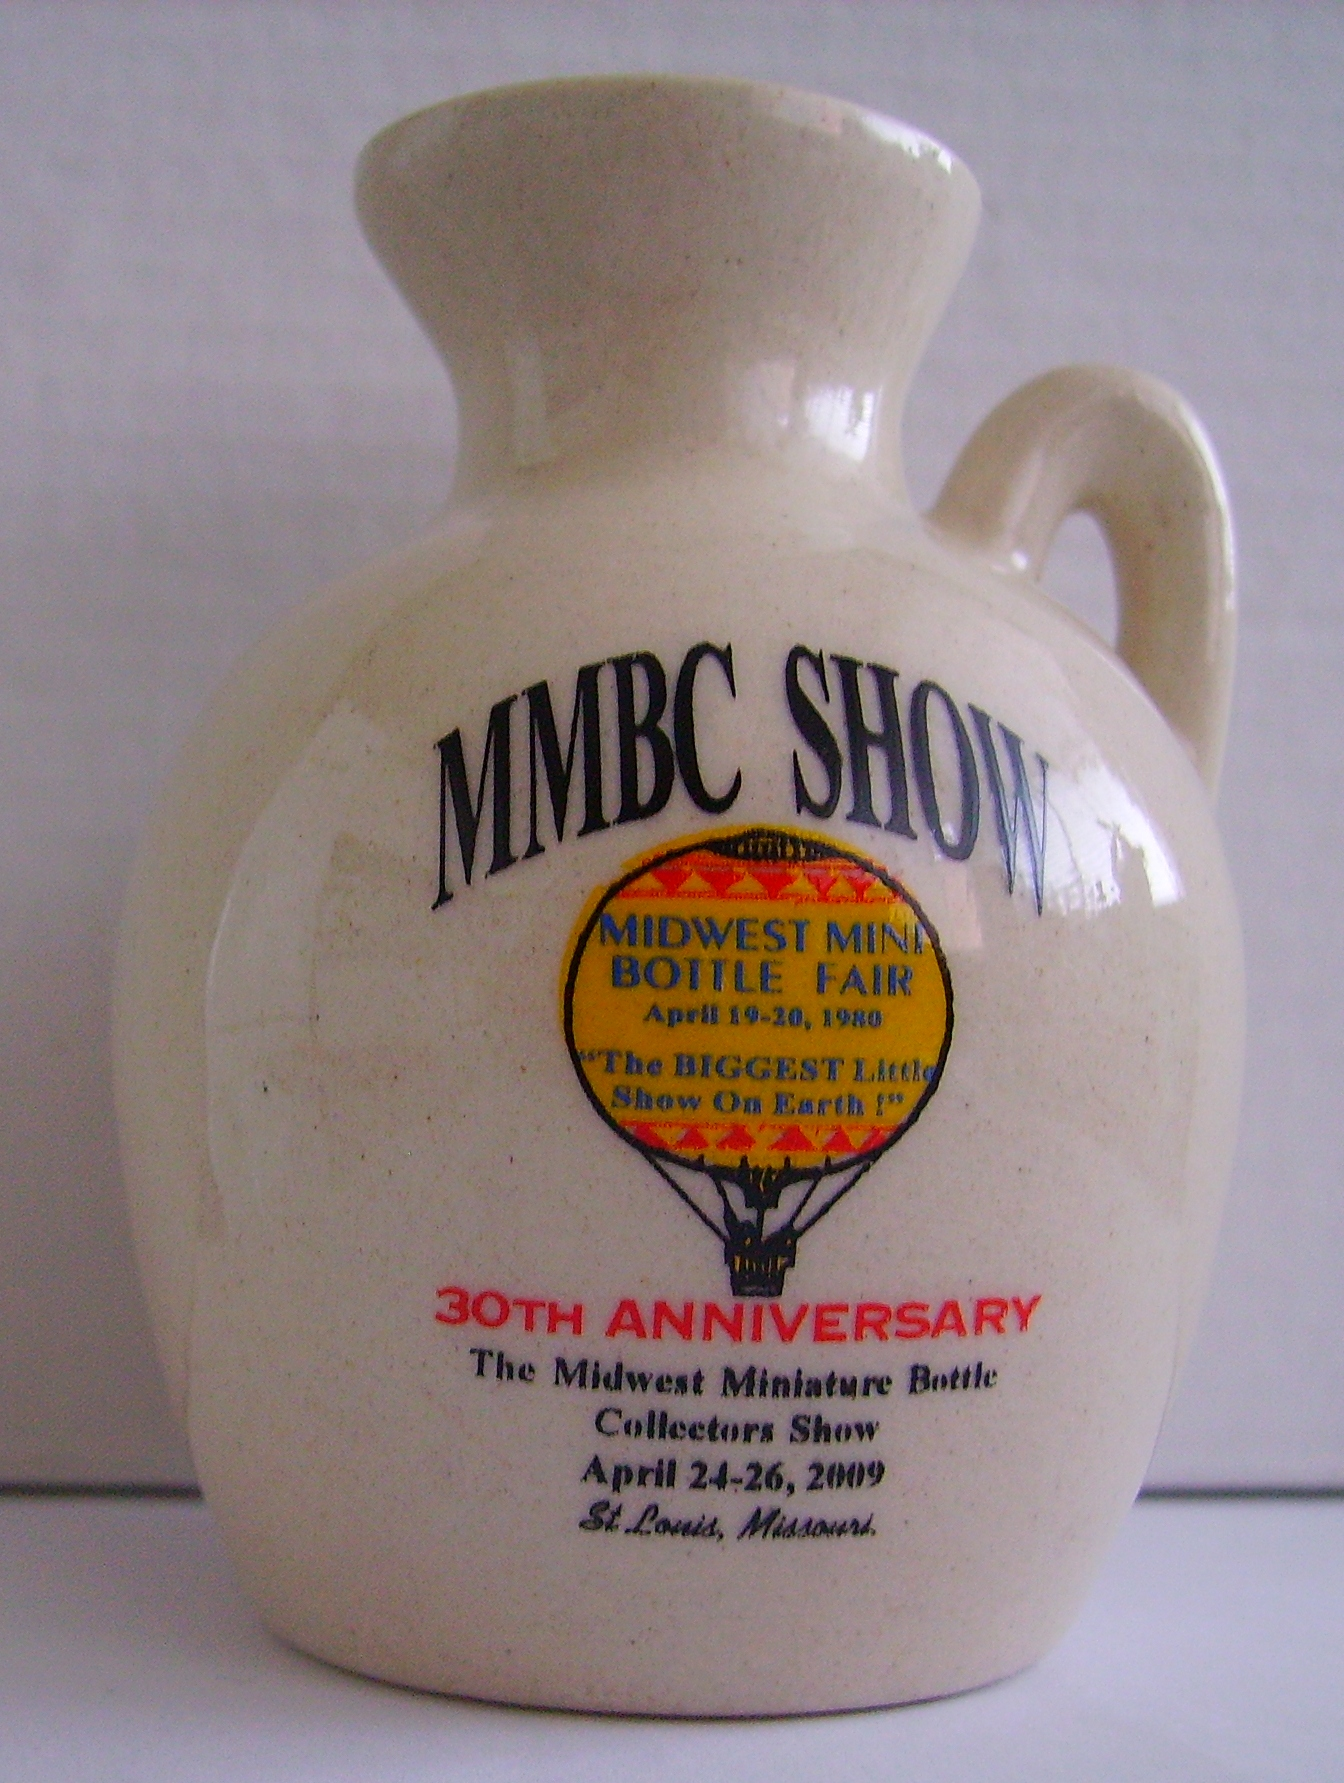 30th Anniversary Midwest Miniature Bottle Club Jug – Front side